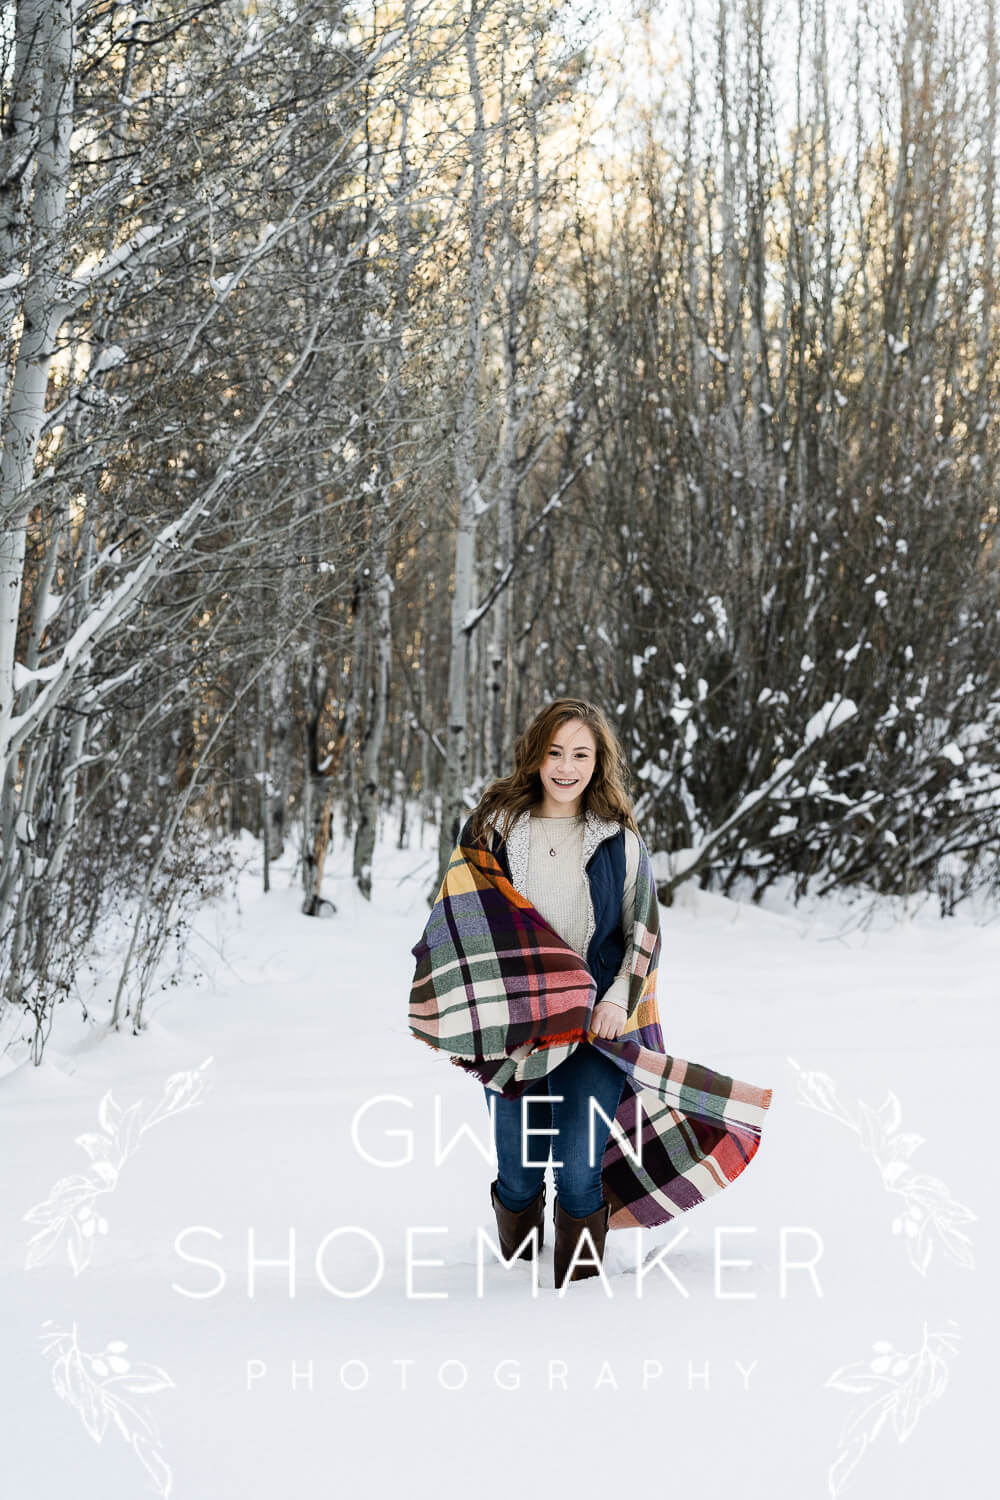 Senior girl walking in snow with colorful scarf.